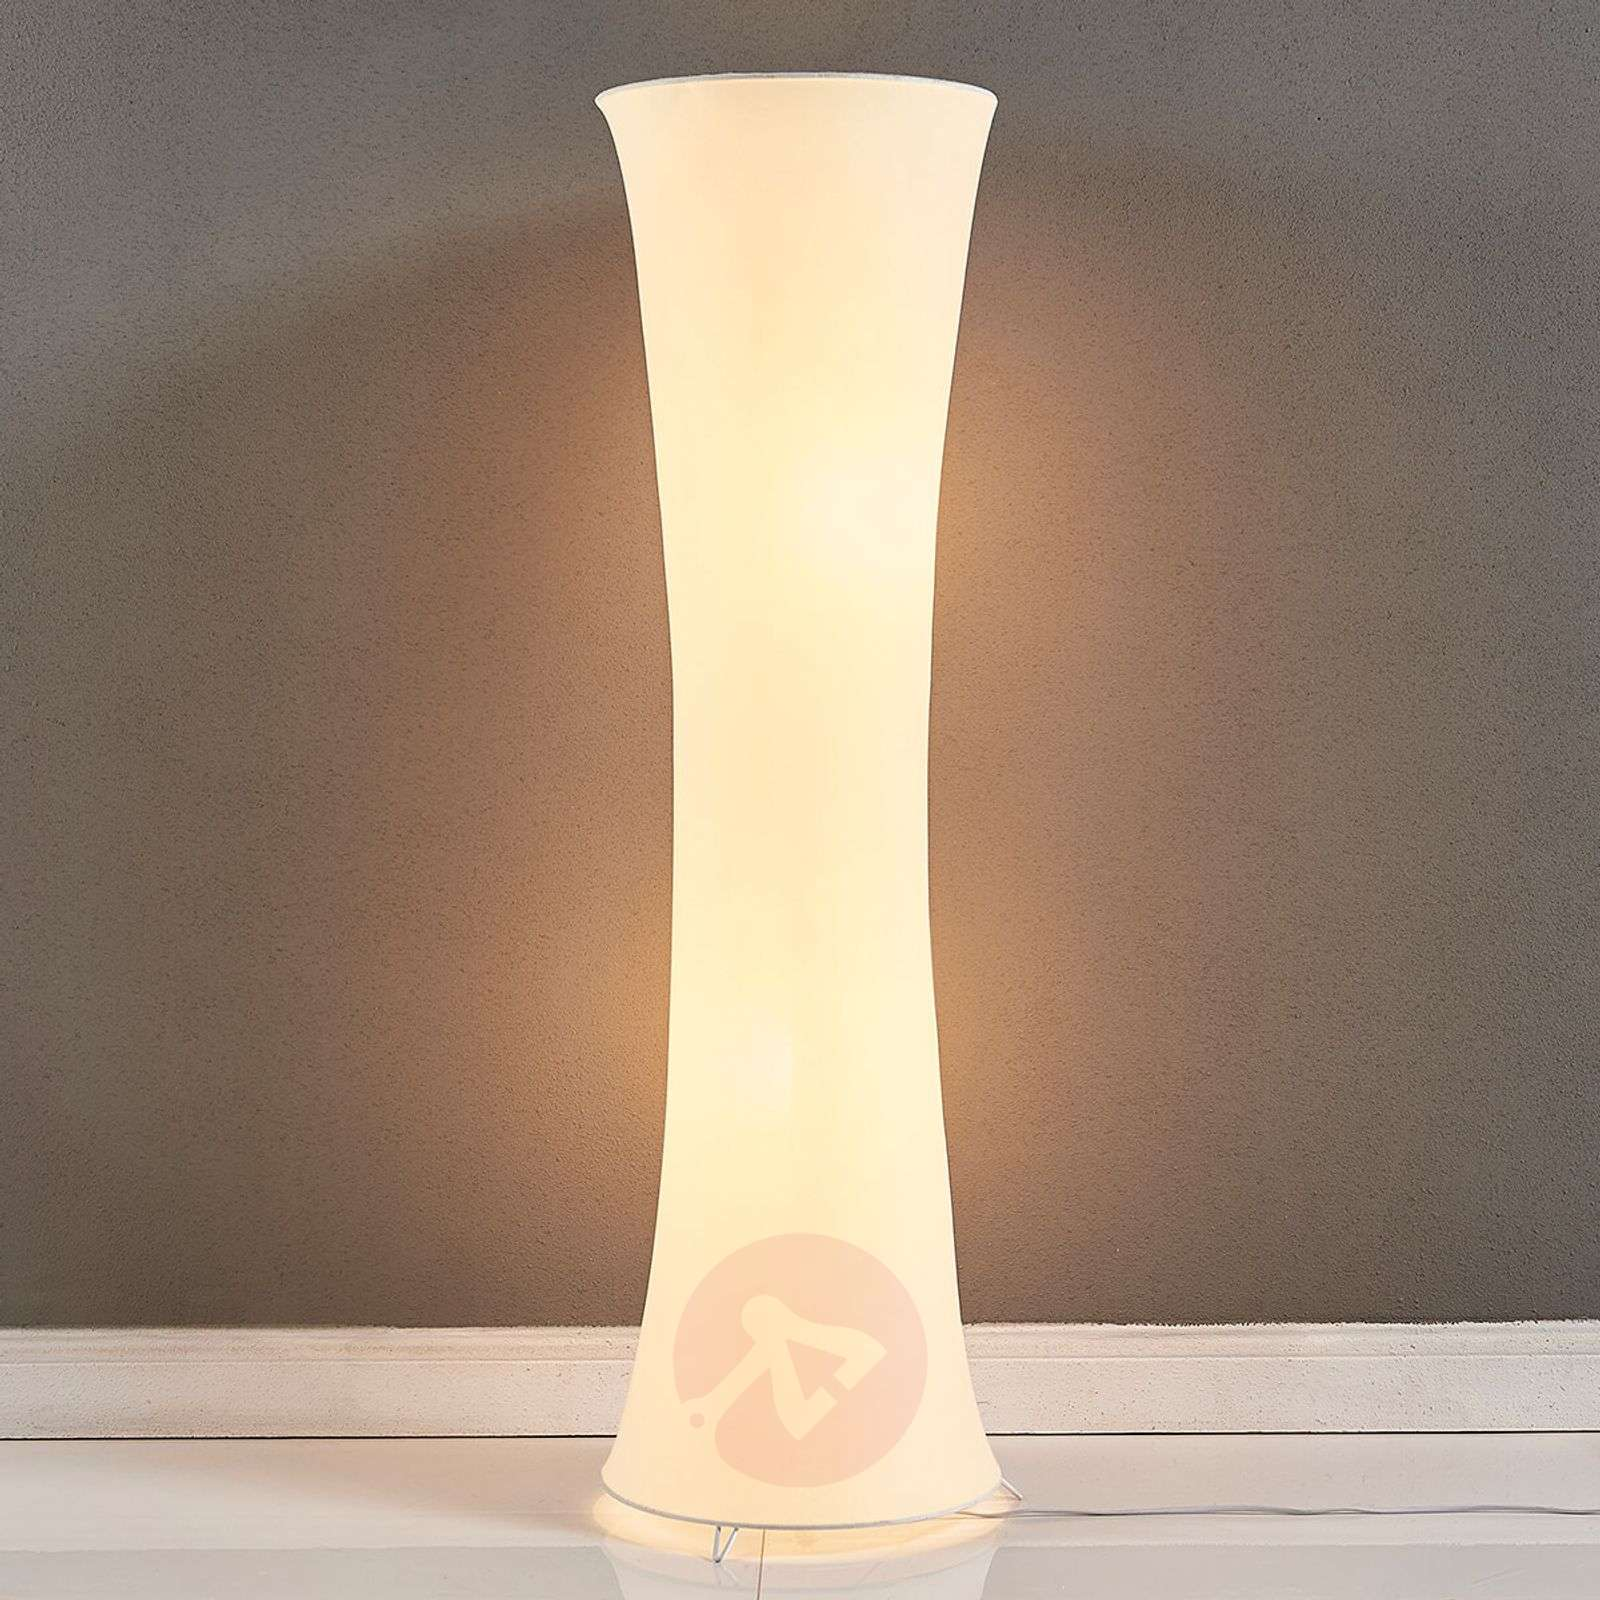 Fabric floor lamp Liana with a concave shape | Lights.co.uk